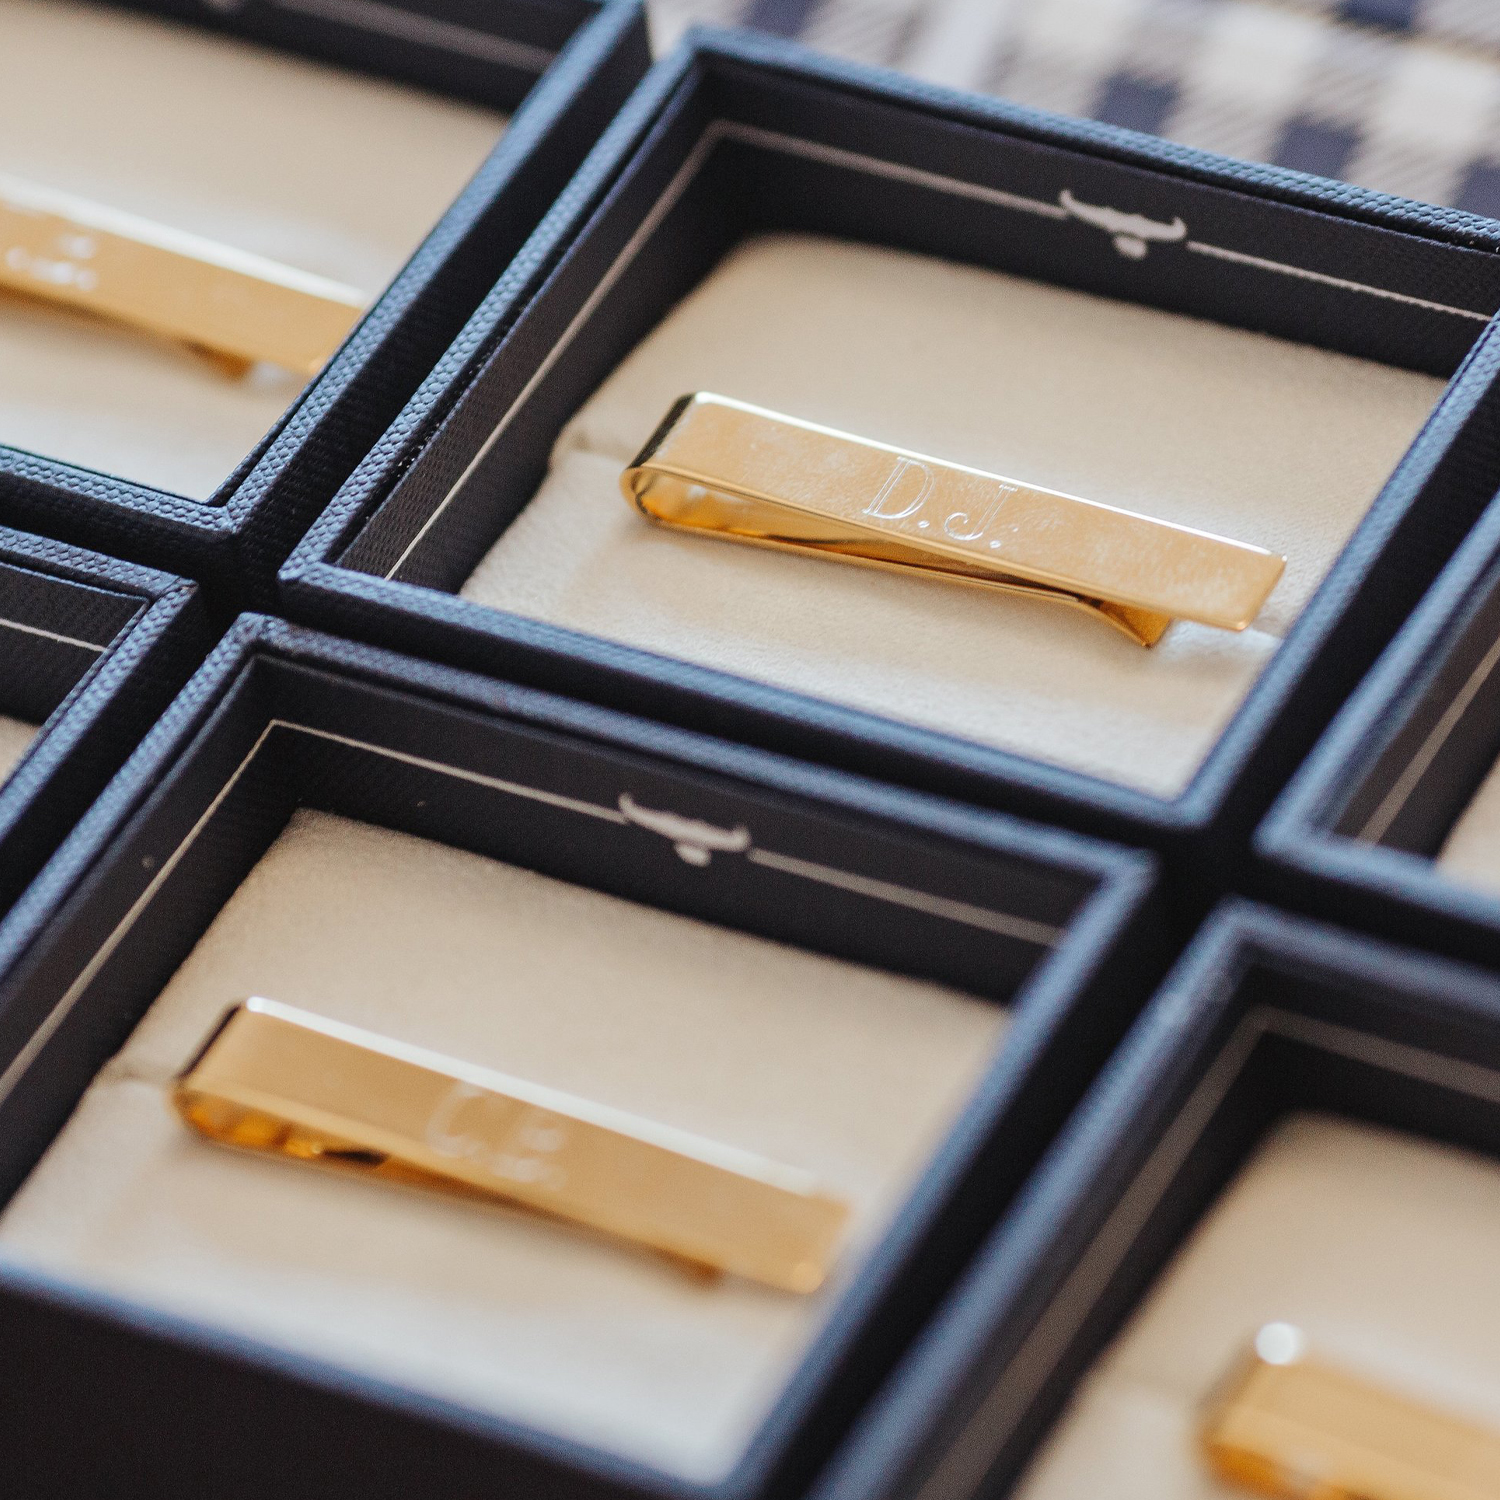 engraved tie bars in display boxes